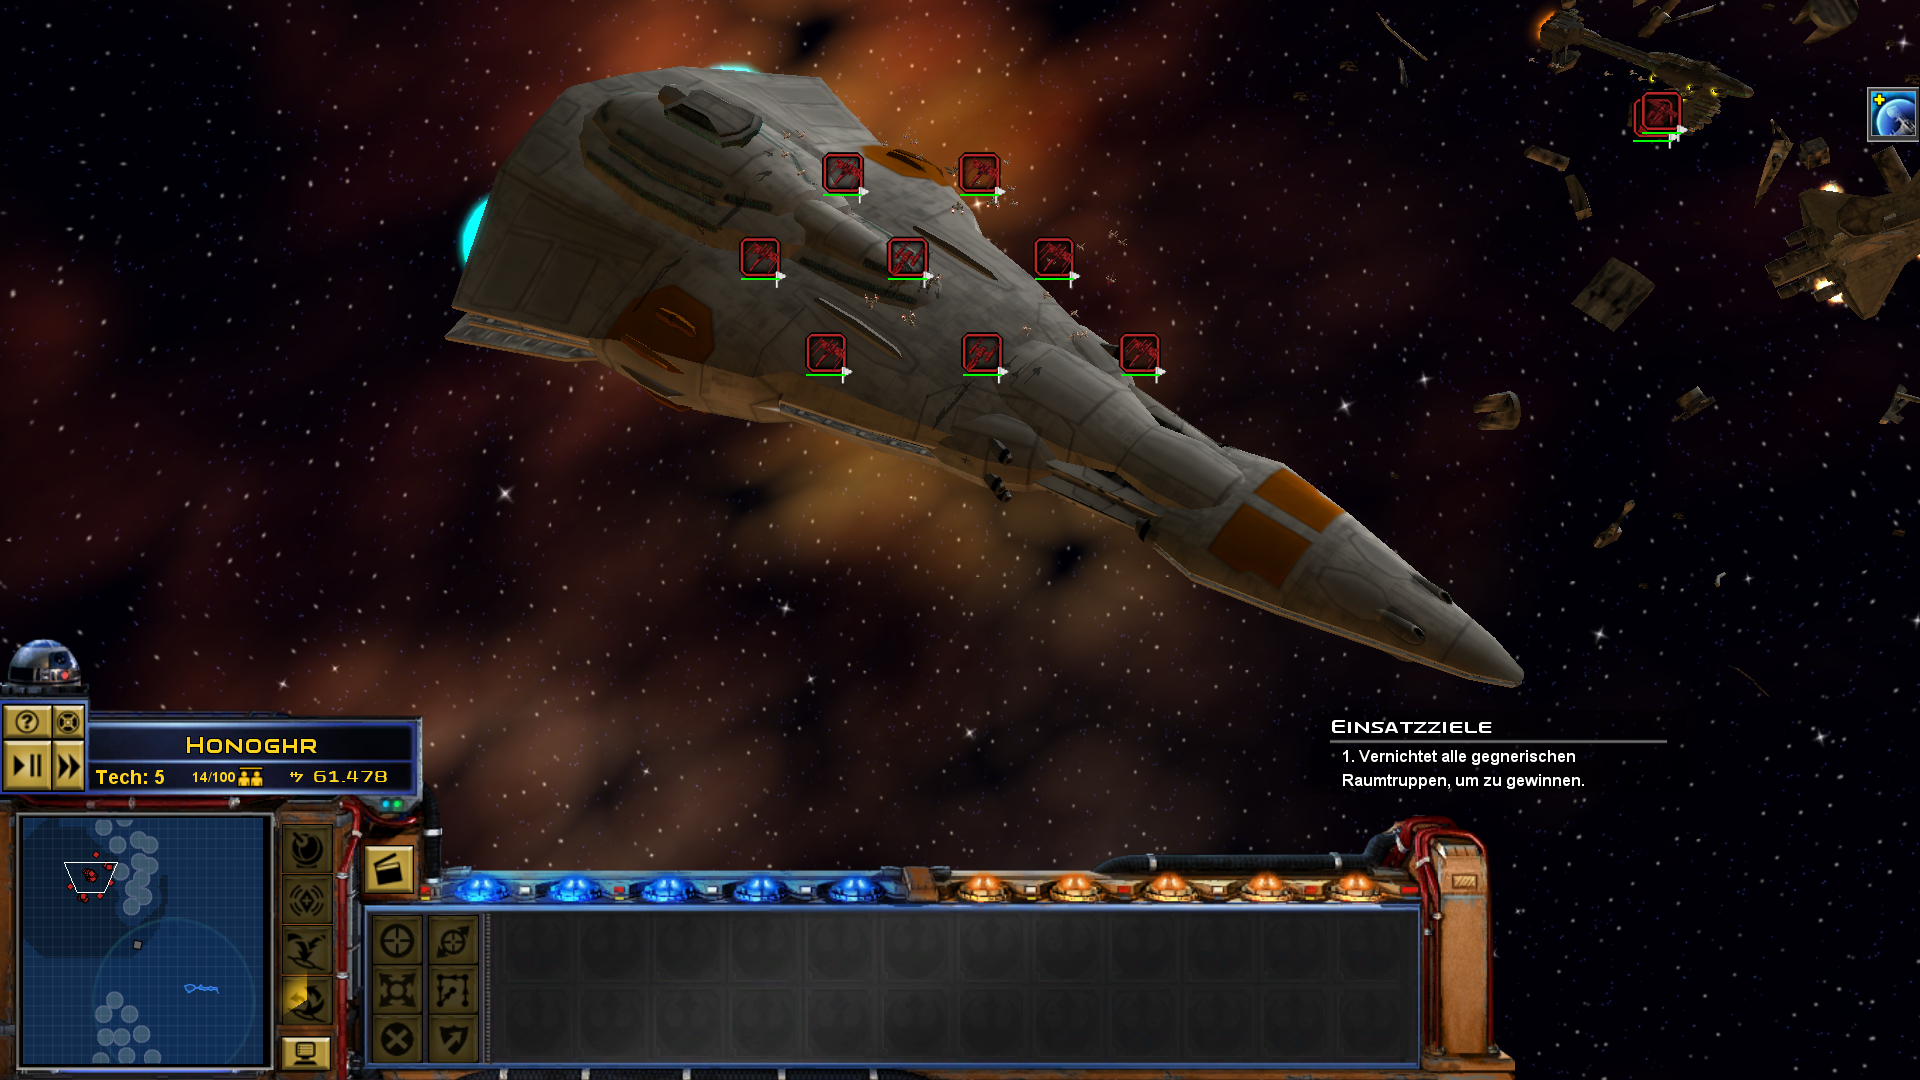 Republic Star Destroyer image - Mod DB